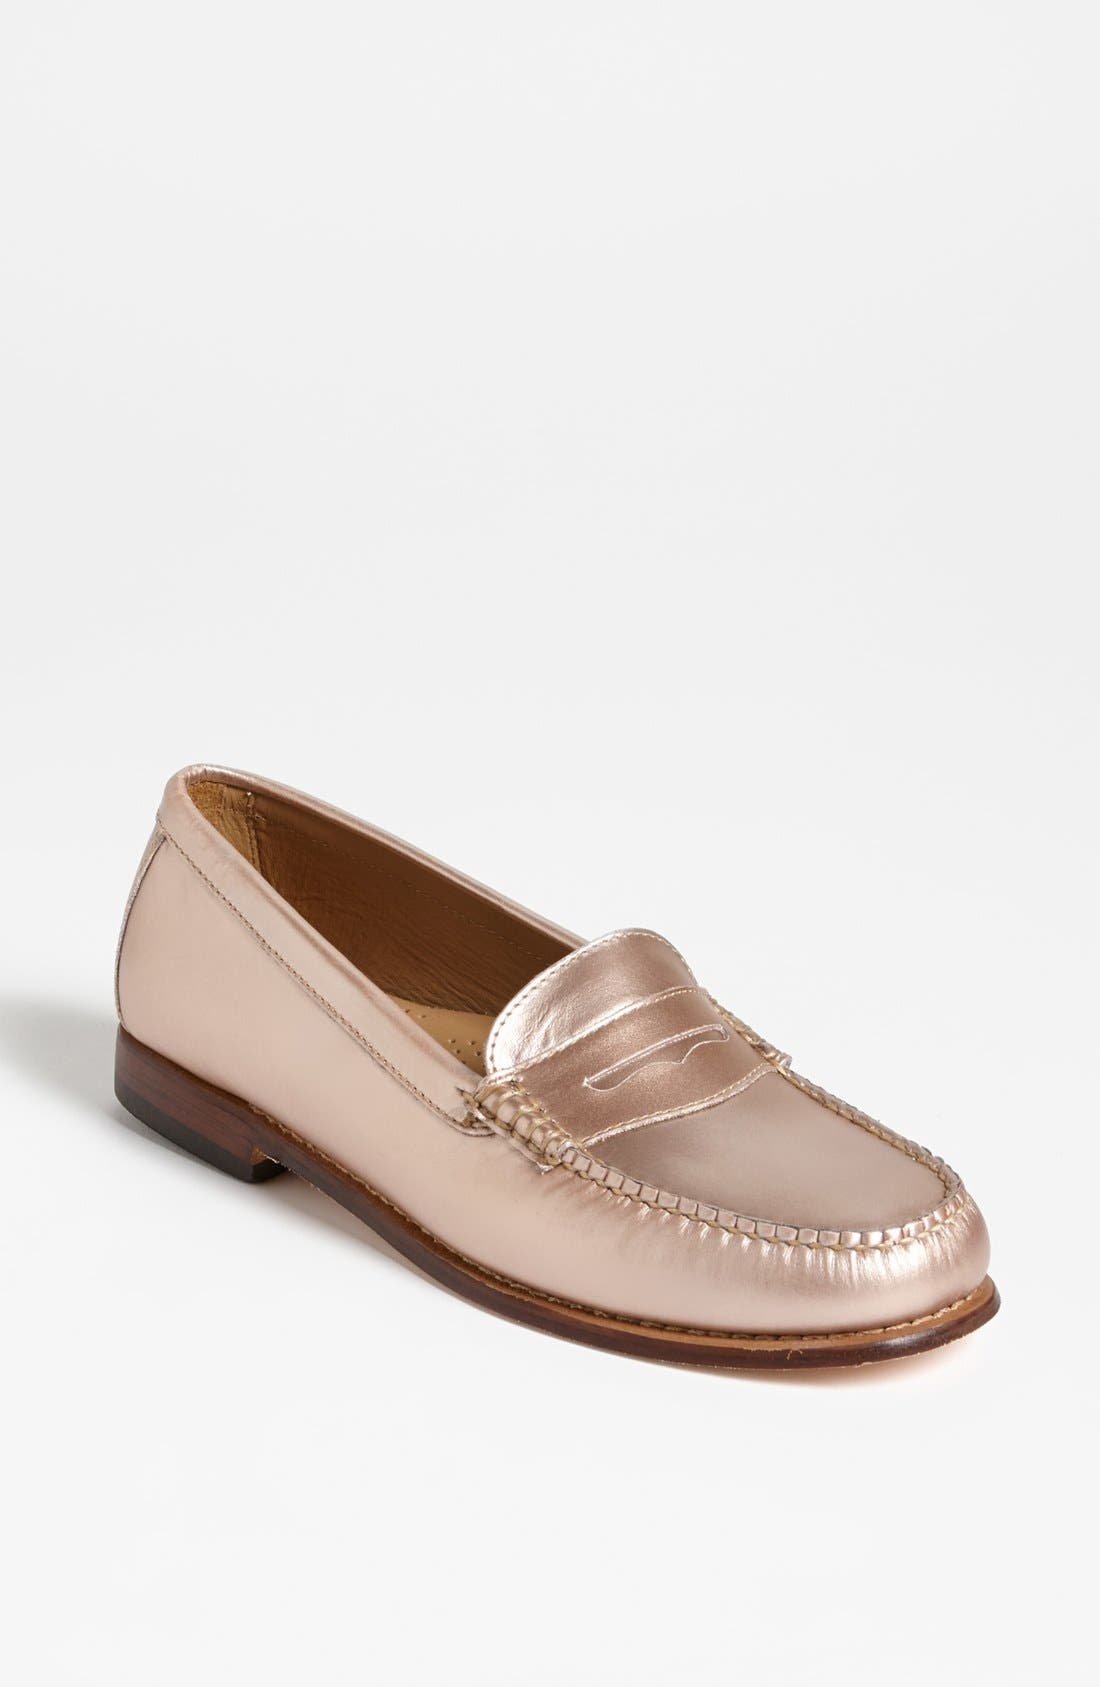 Main Image - G.H. Bass & Co. Metallic Leather Loafer Flat